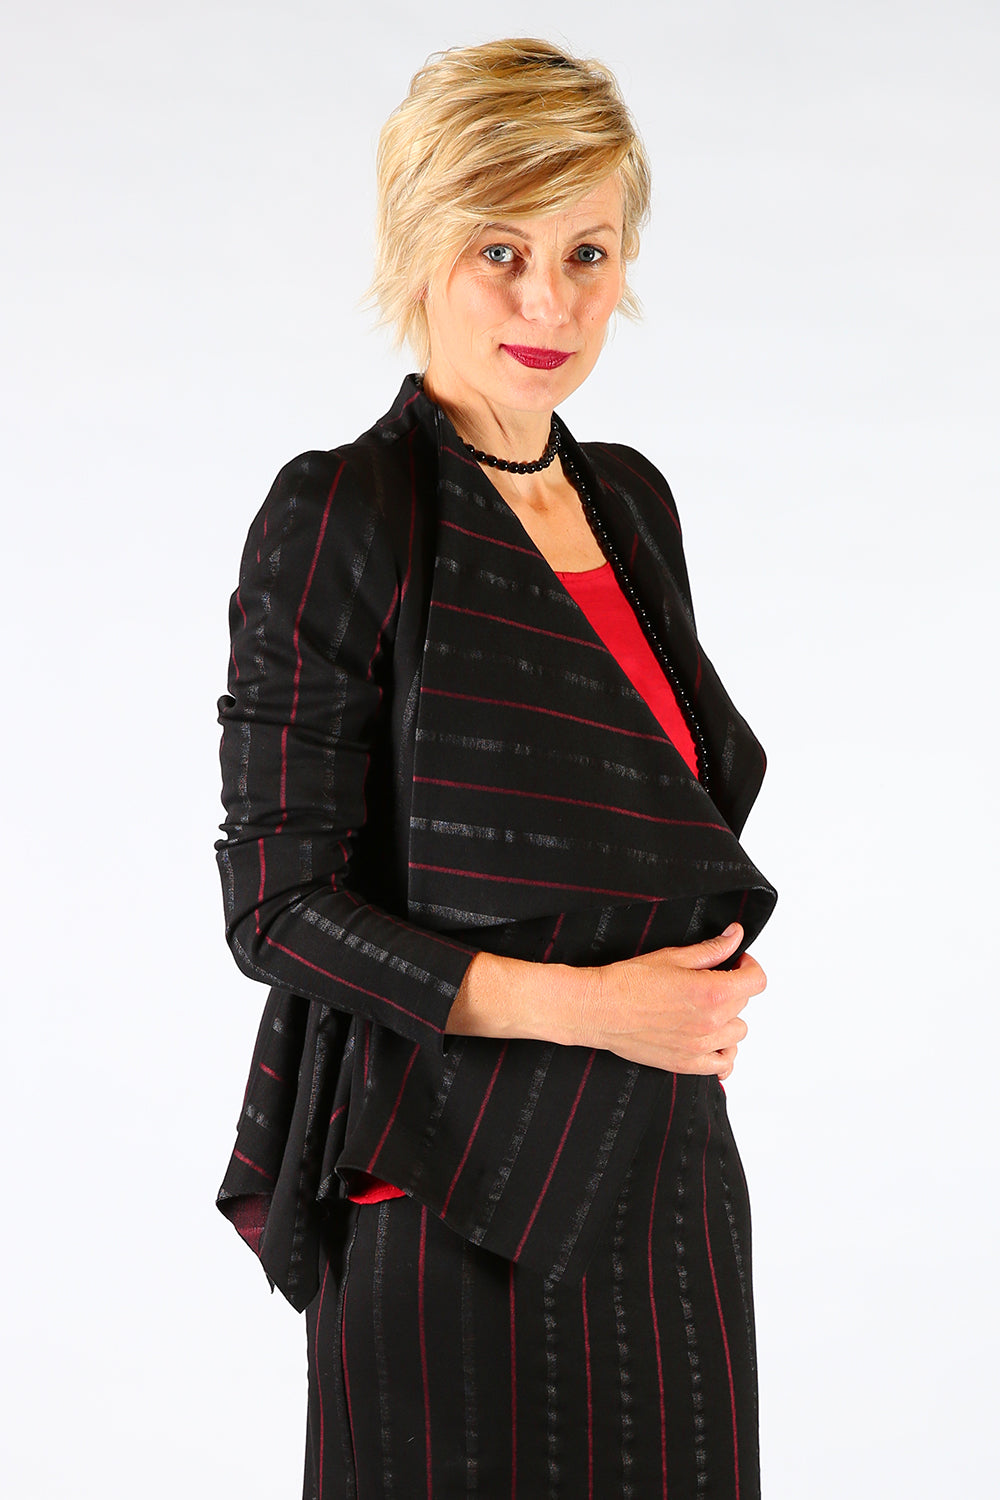 Brenna Brea Jacket, Annah Stretton AW19, Black Stripe Jacket, Shot on Model